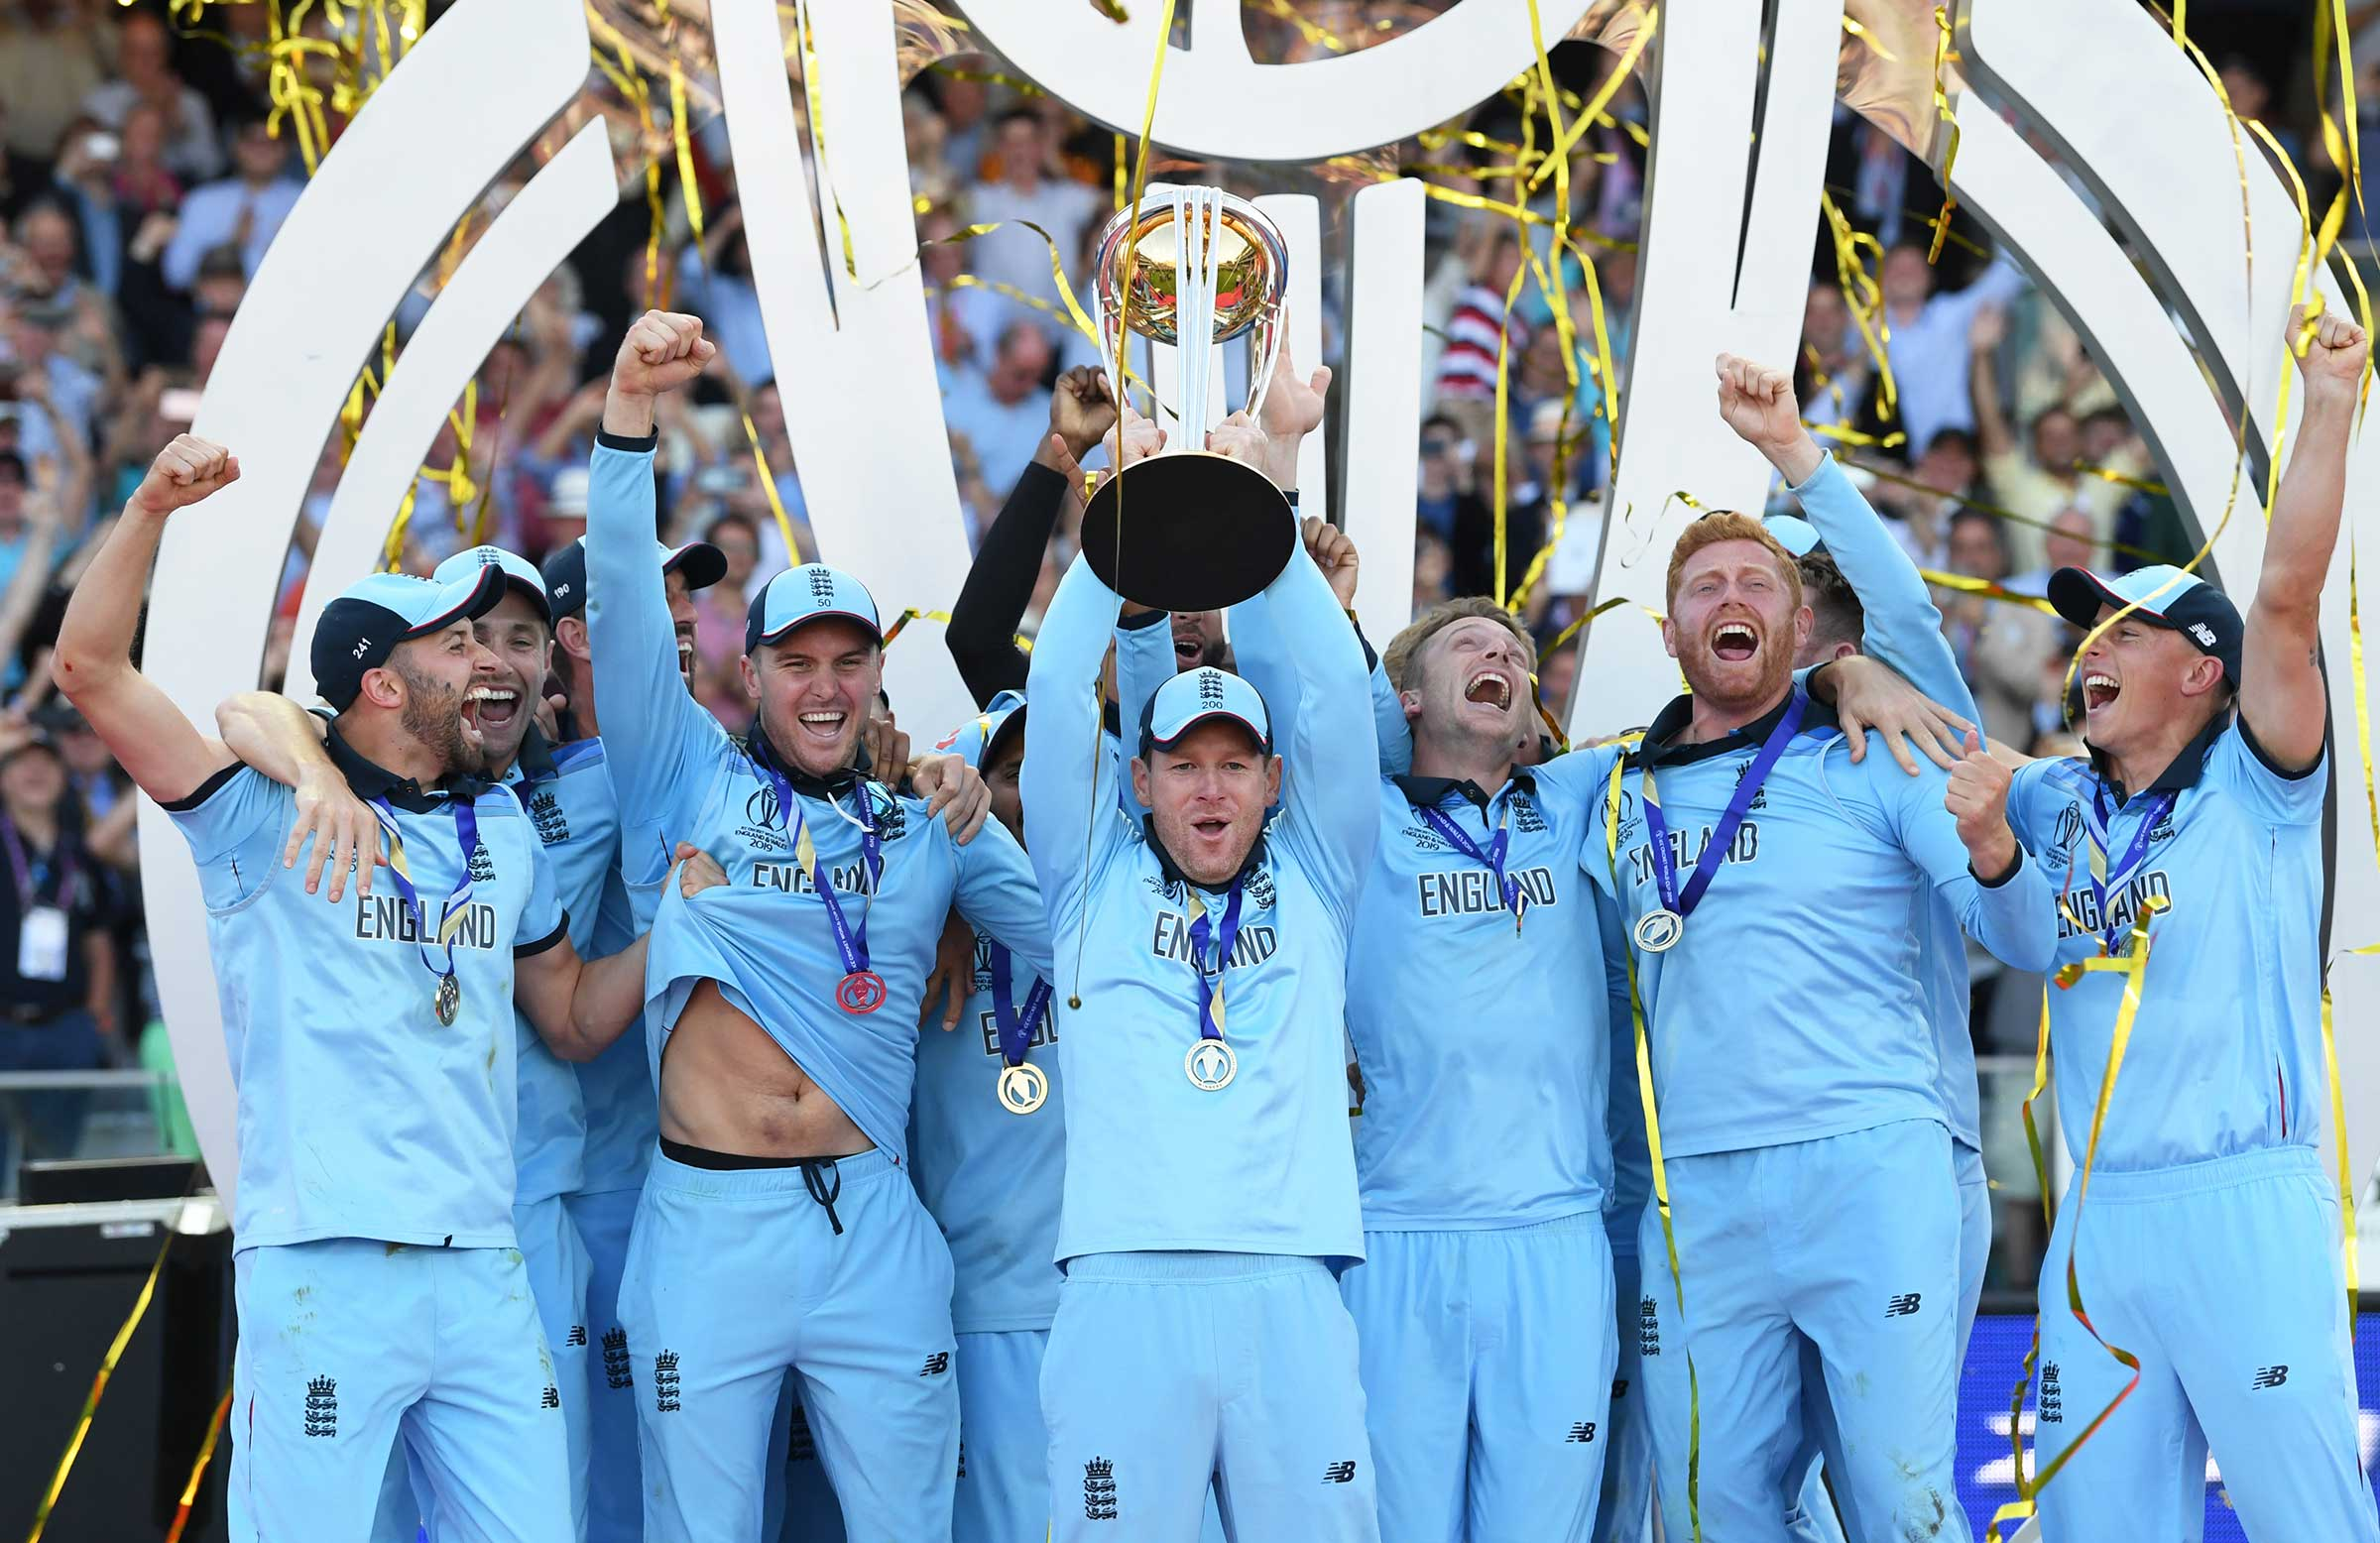 England claim the World Cup after a Super Over